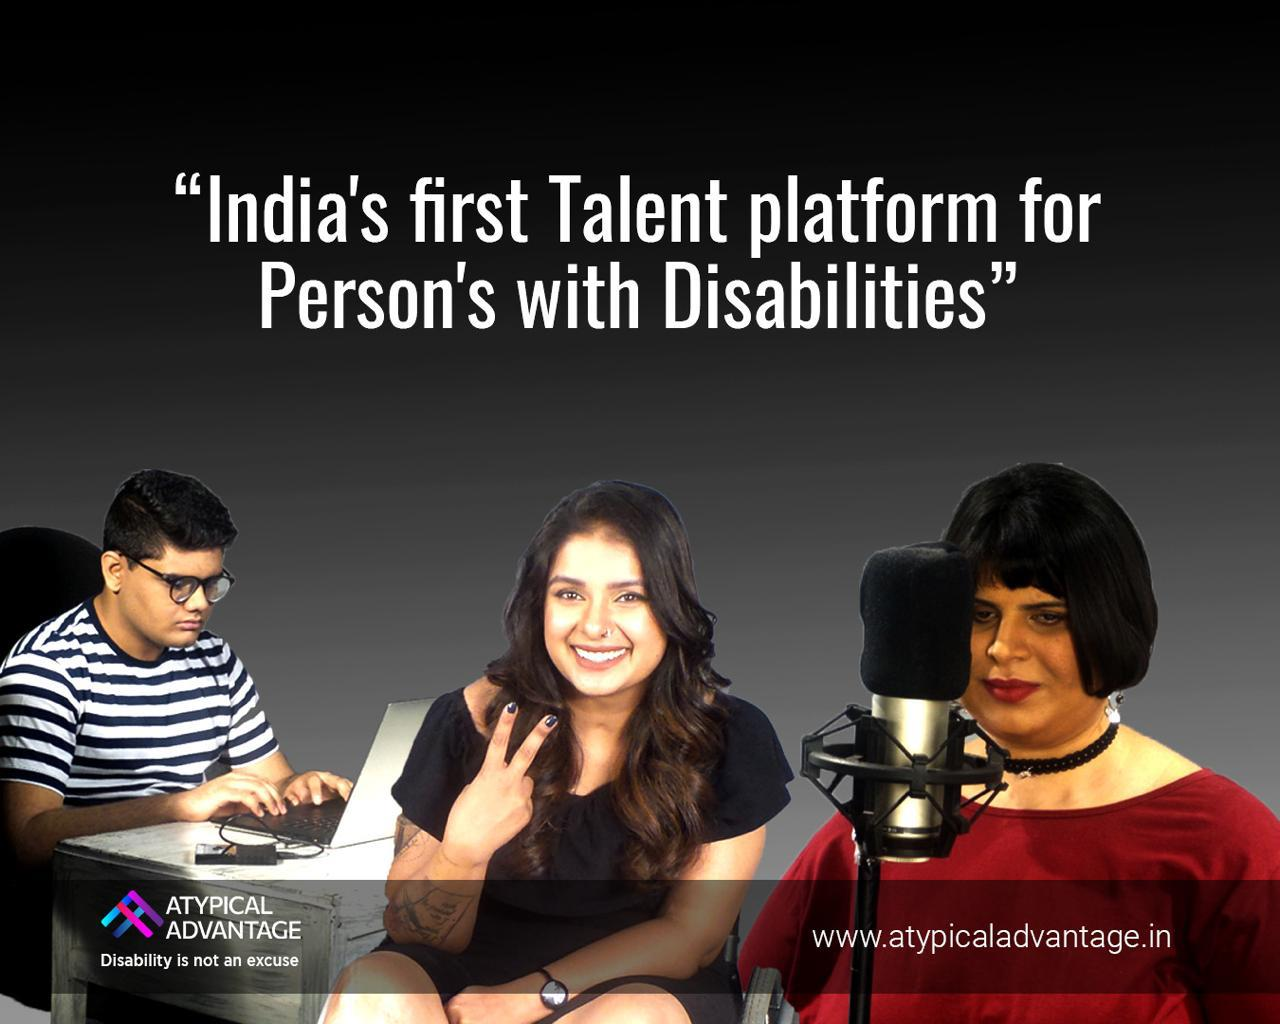 Livemint: A platform for people with disabilities to showcase talent, find jobs, sell art